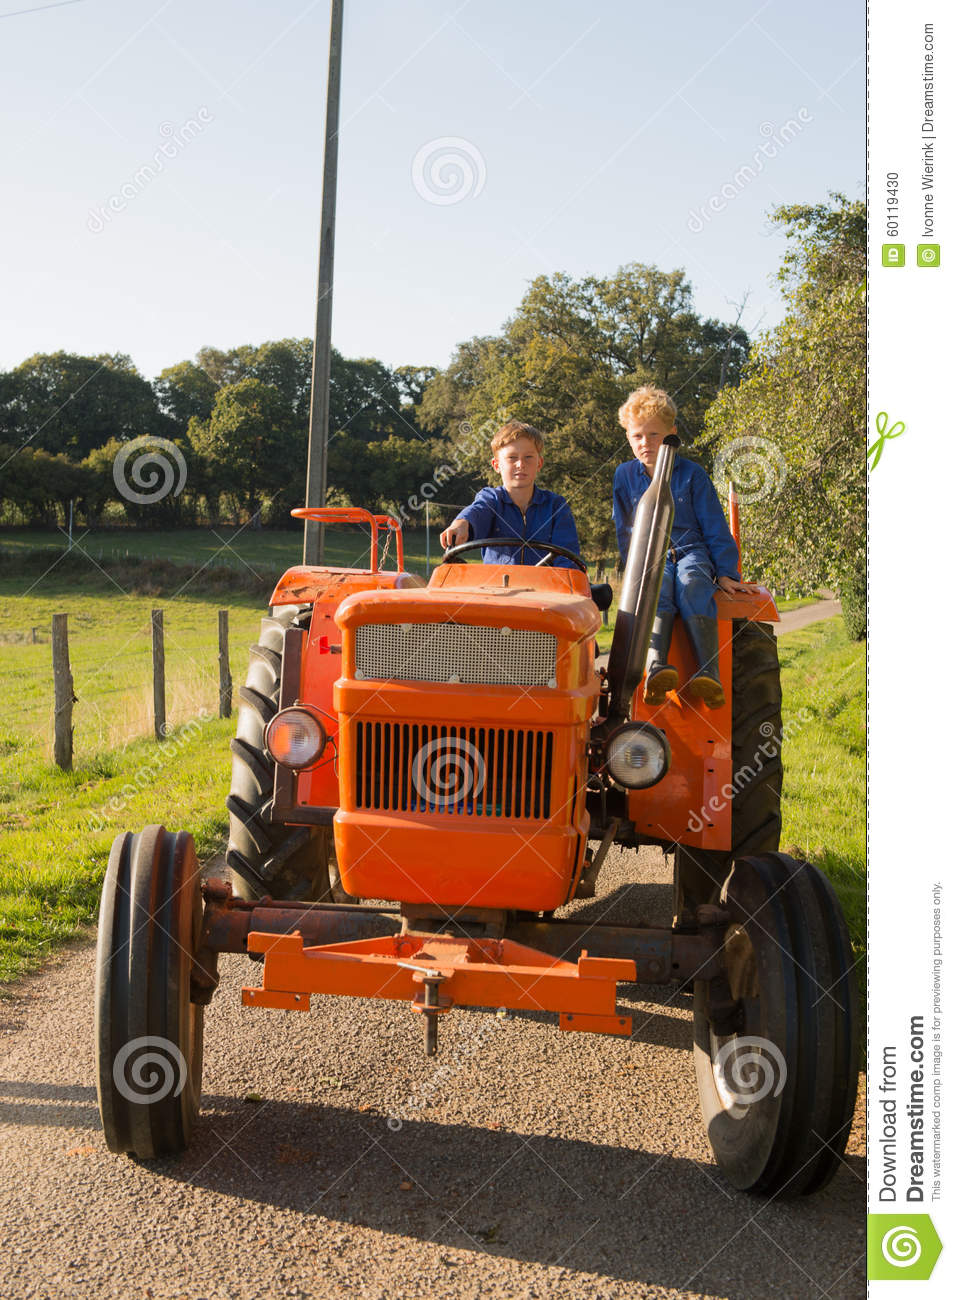 Farm Boys With Tractor Stock Photo - Image: 60119430